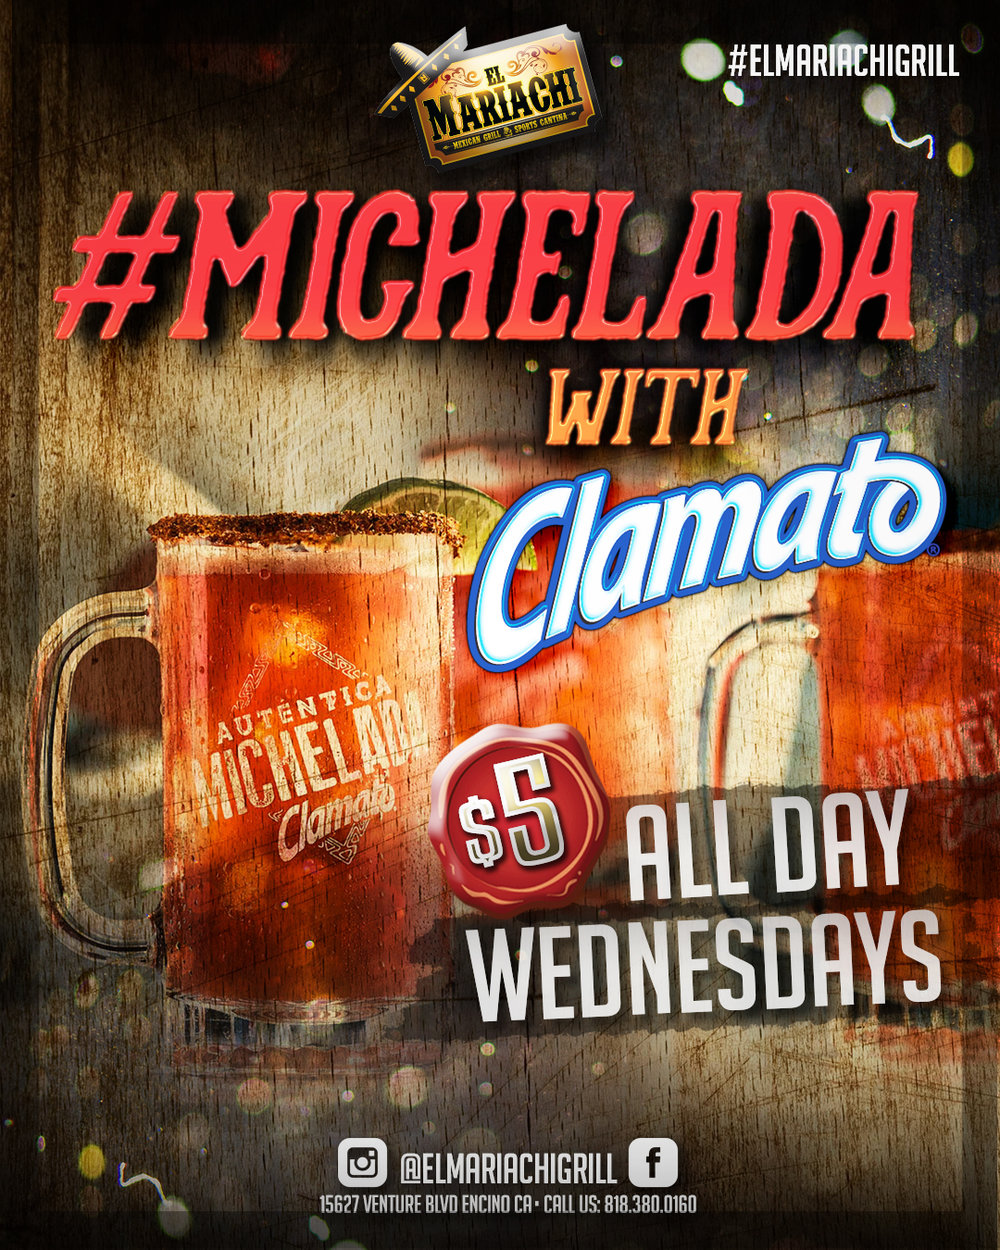 WEDNESDAYS - MichWednesdays refresh yourself every Wednesday with our signature #Micheladas, made with the freshest ingredients!